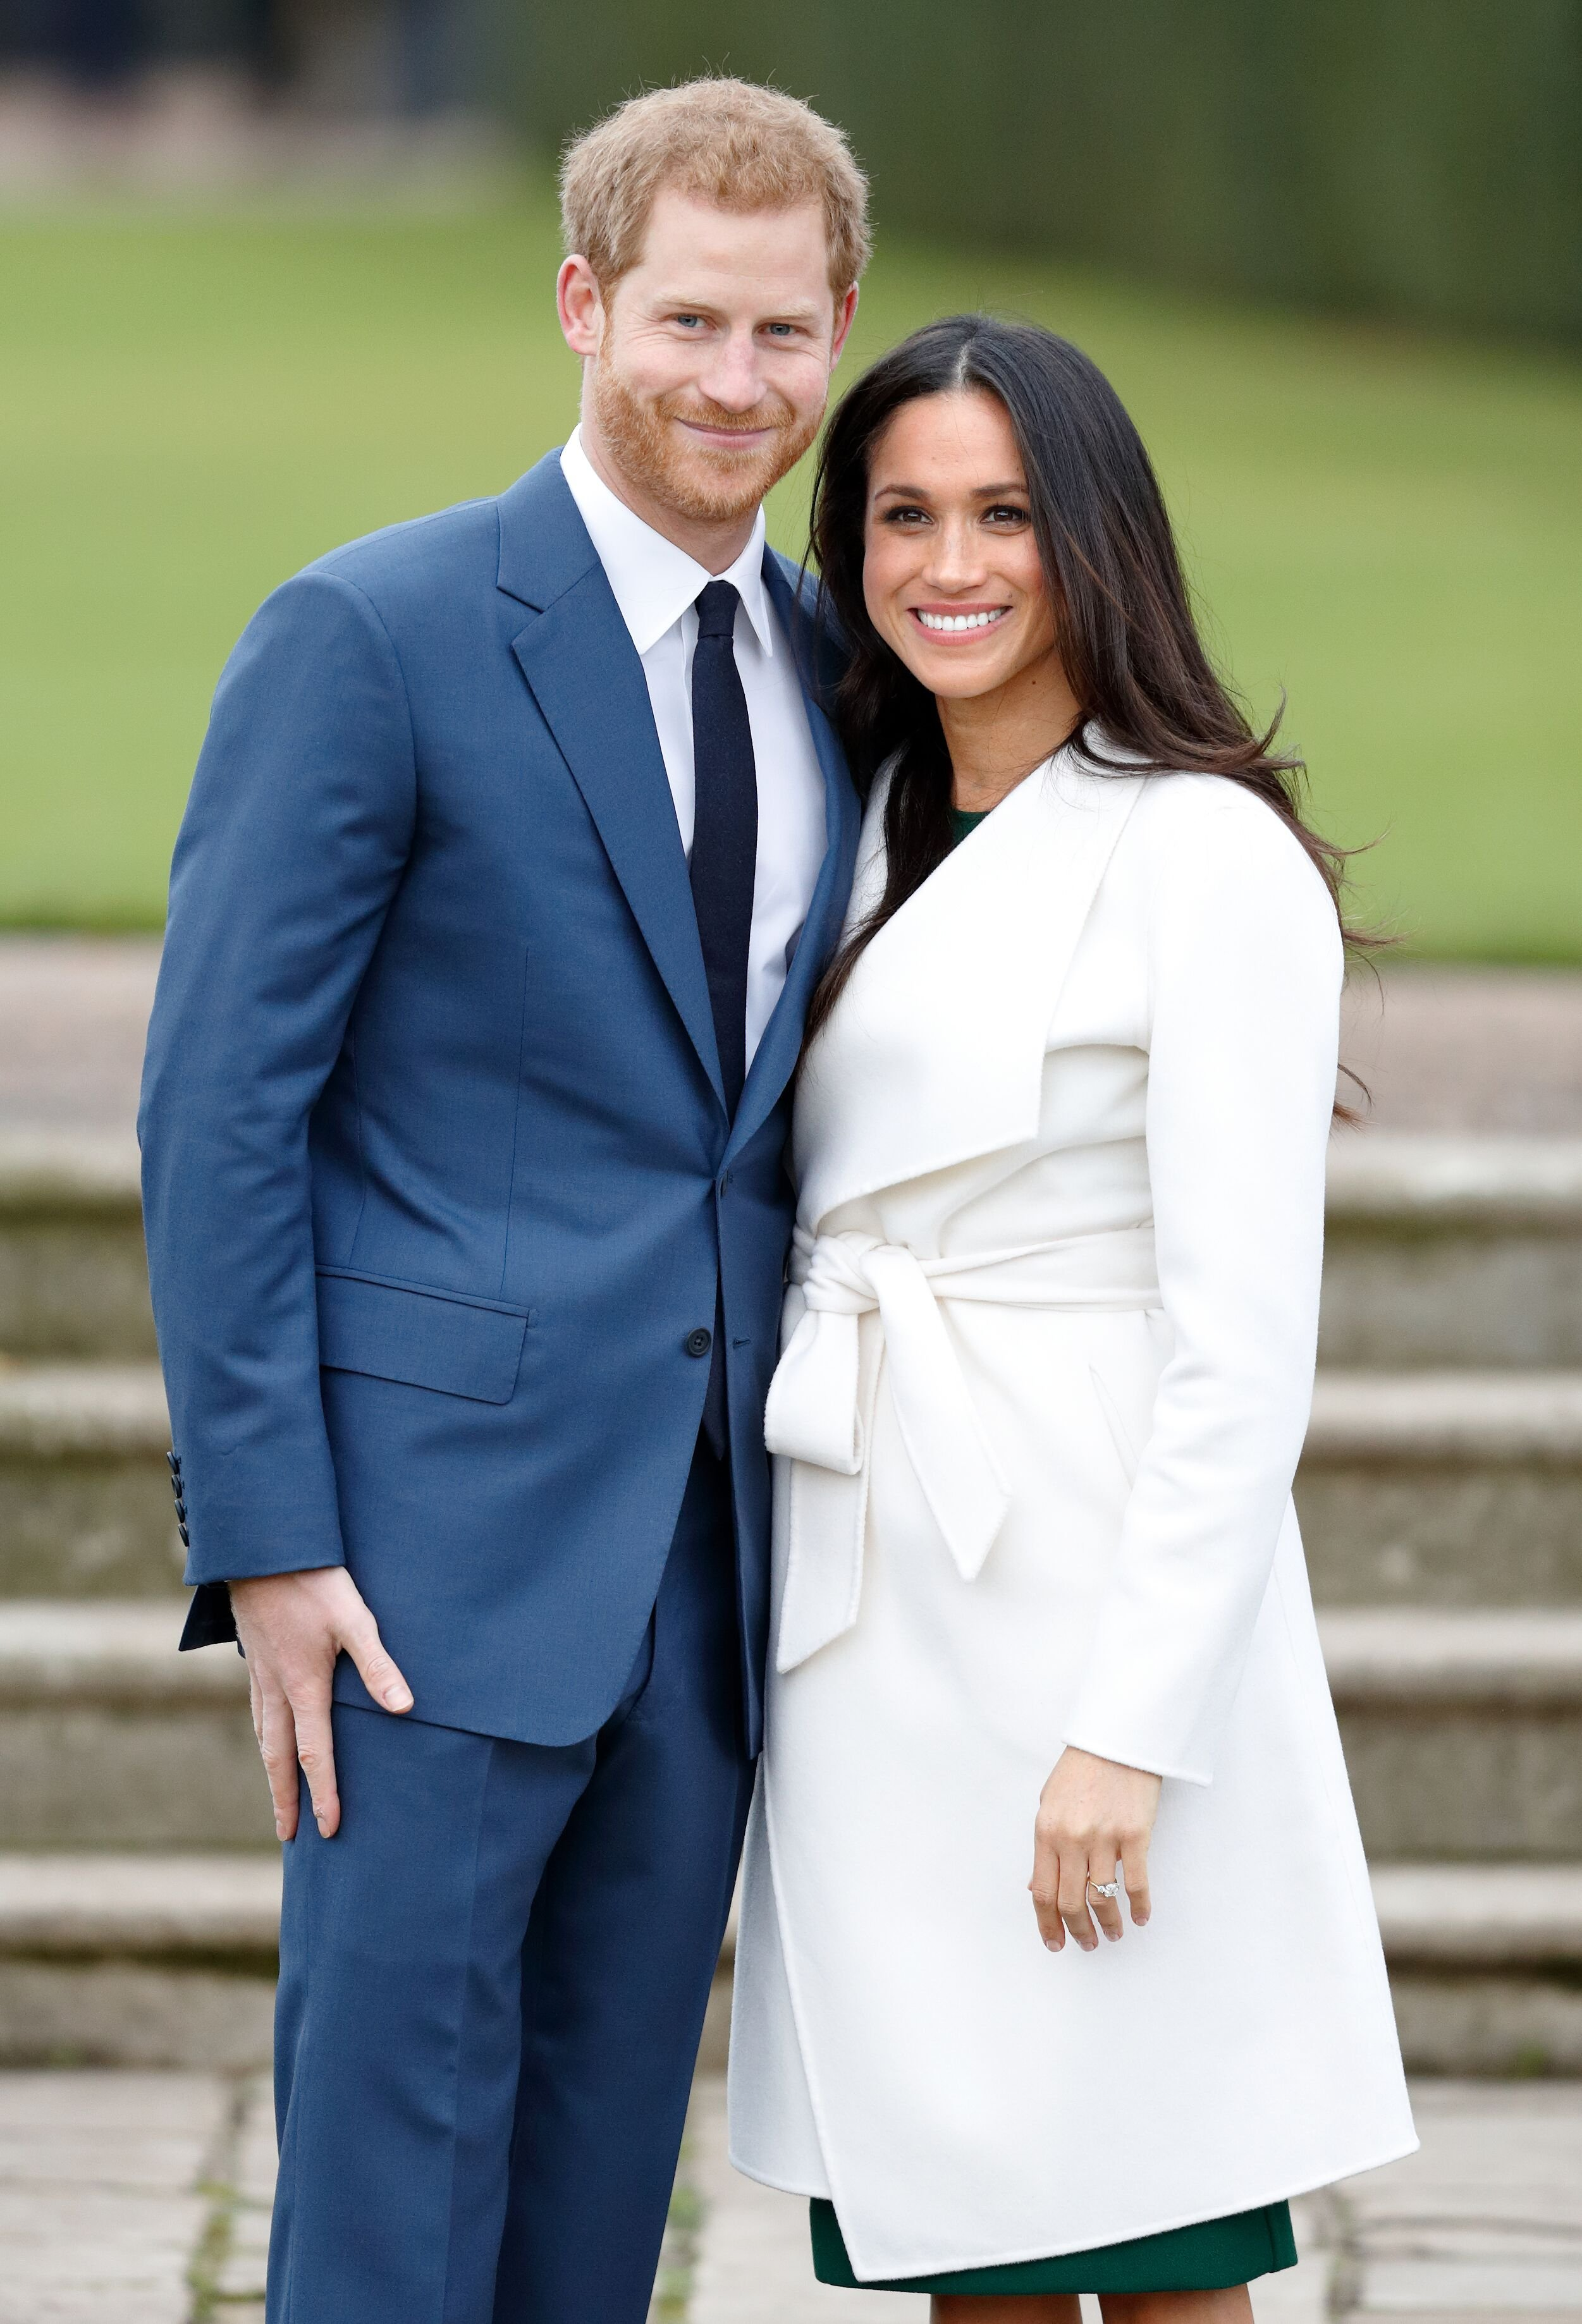 Meghan Markle and Prince Harry's engagement photographs | Getty Images